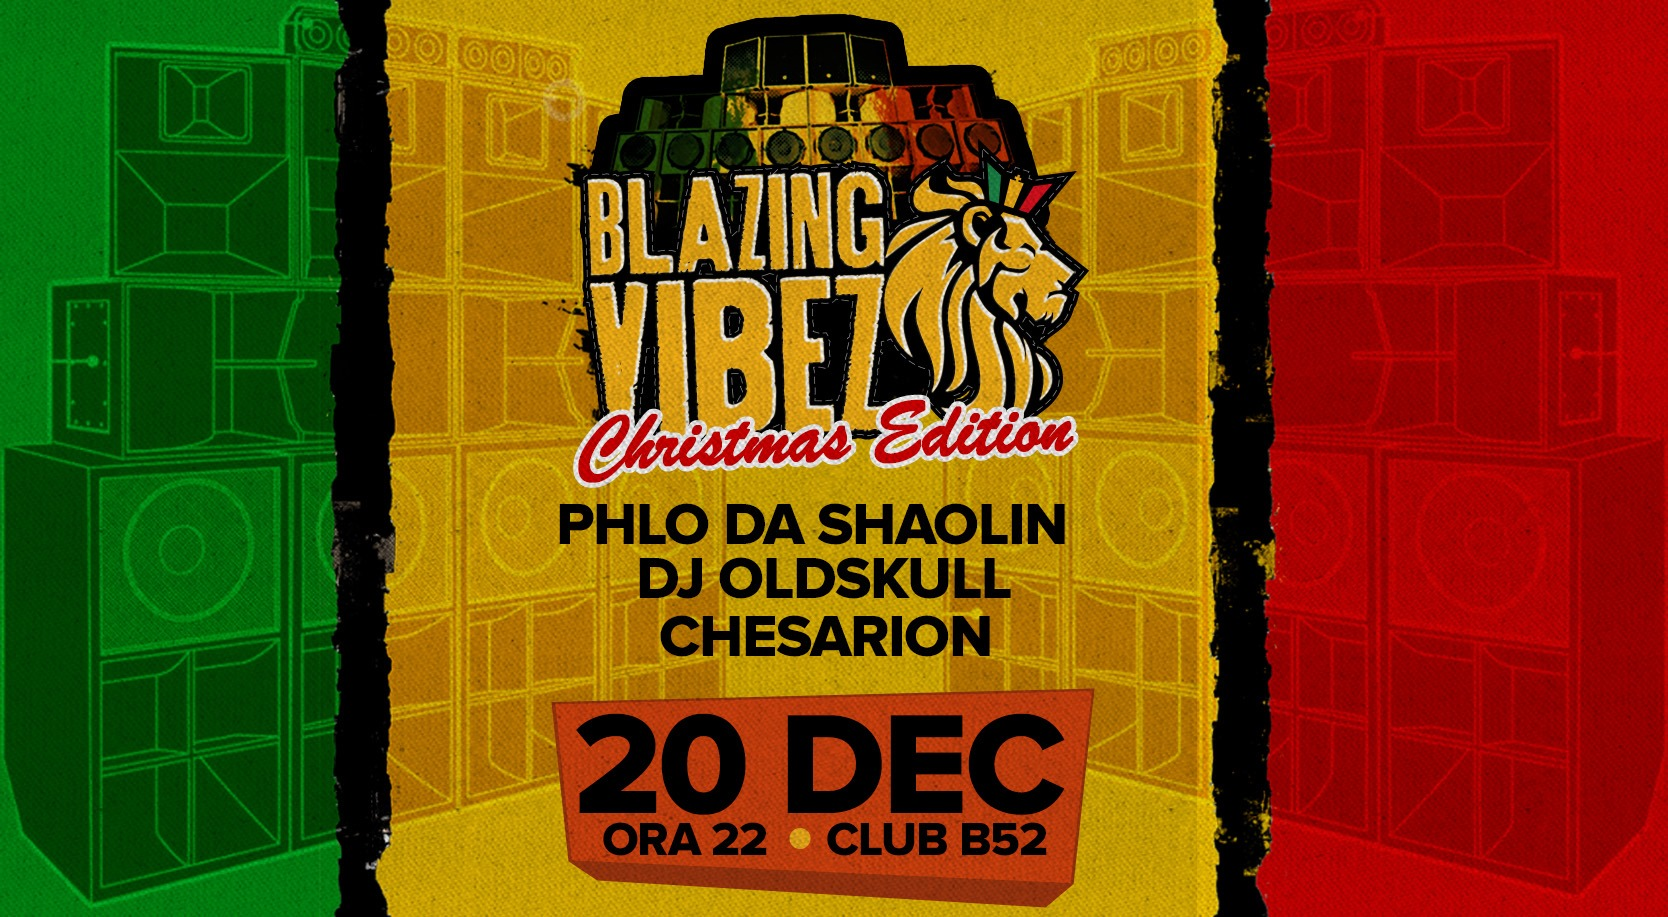 Blazing Vibez Christmas Edition at B52 Club